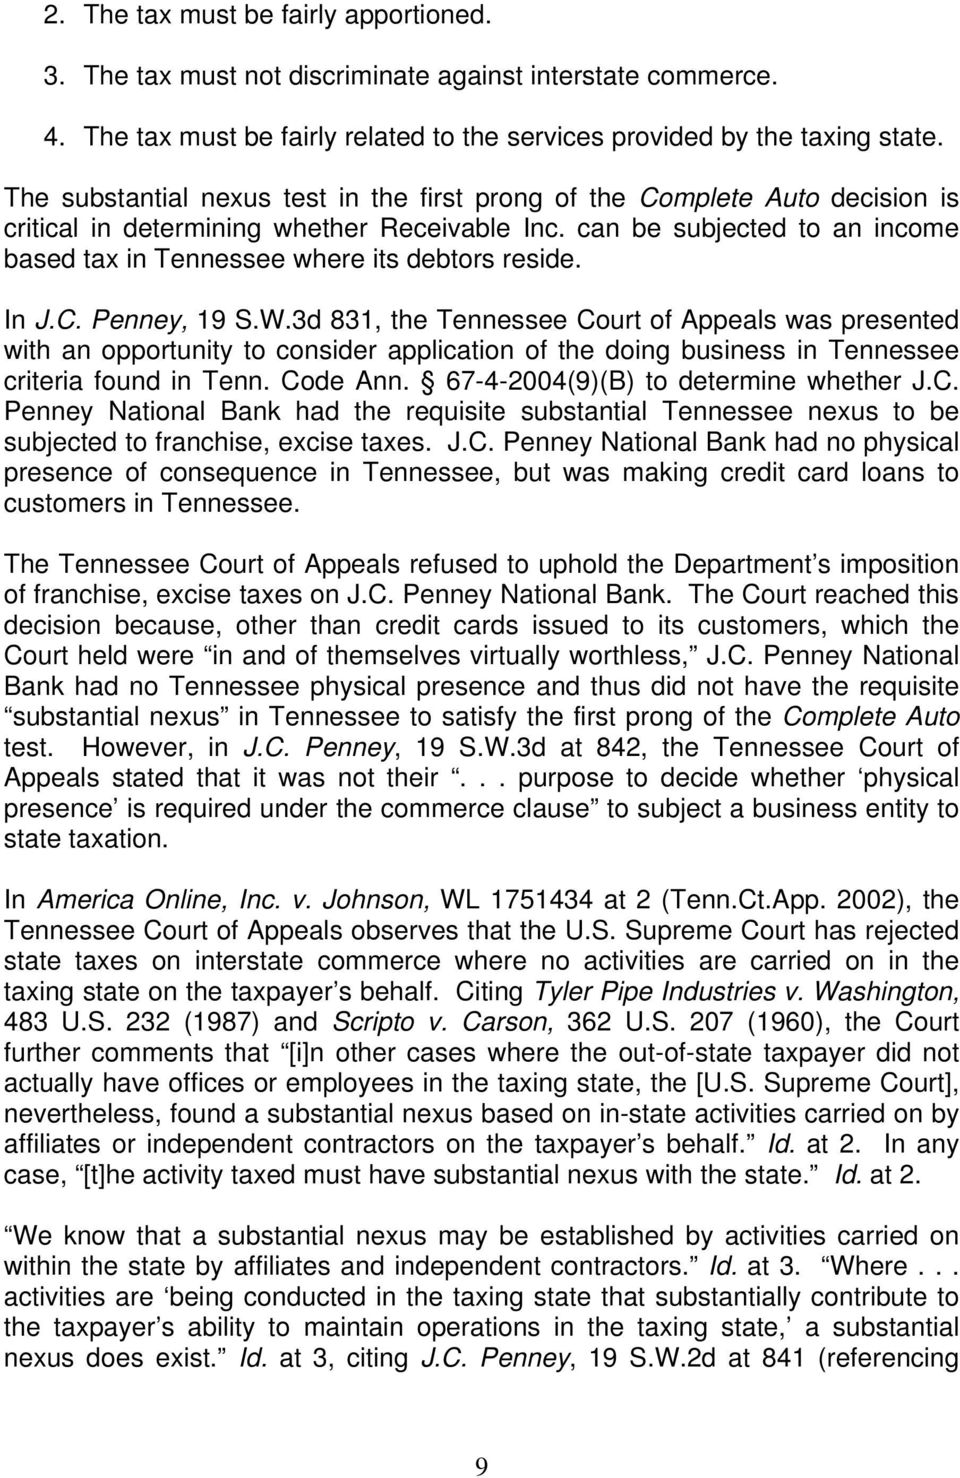 can be subjected to an income based tax in Tennessee where its debtors reside. In J.C. Penney, 19 S.W.